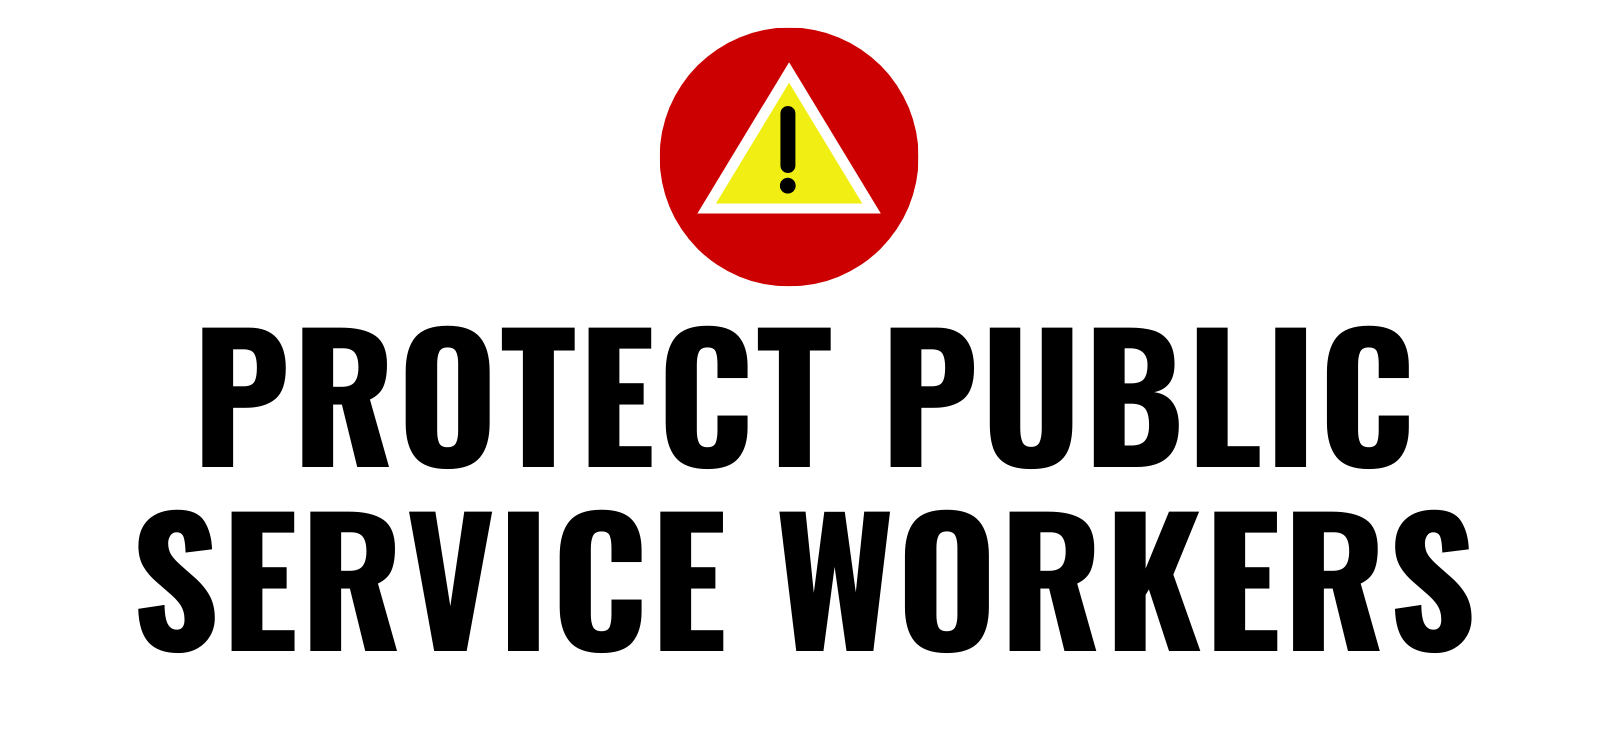 Protect Public Service Workers